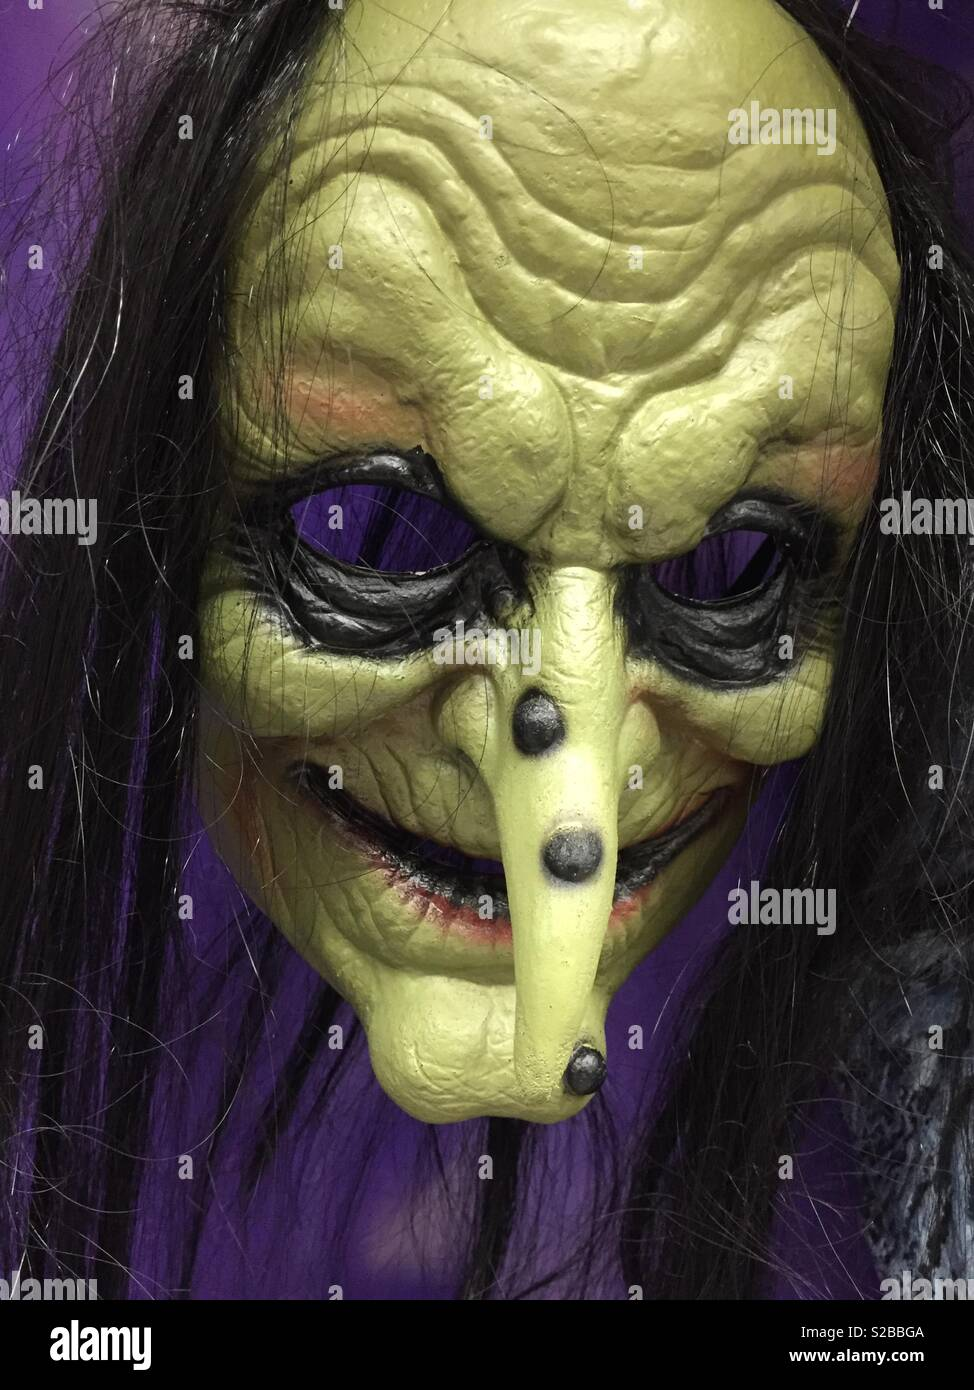 Evil Sinister Witch With Warts On Her Nose Mask Halloween Usa